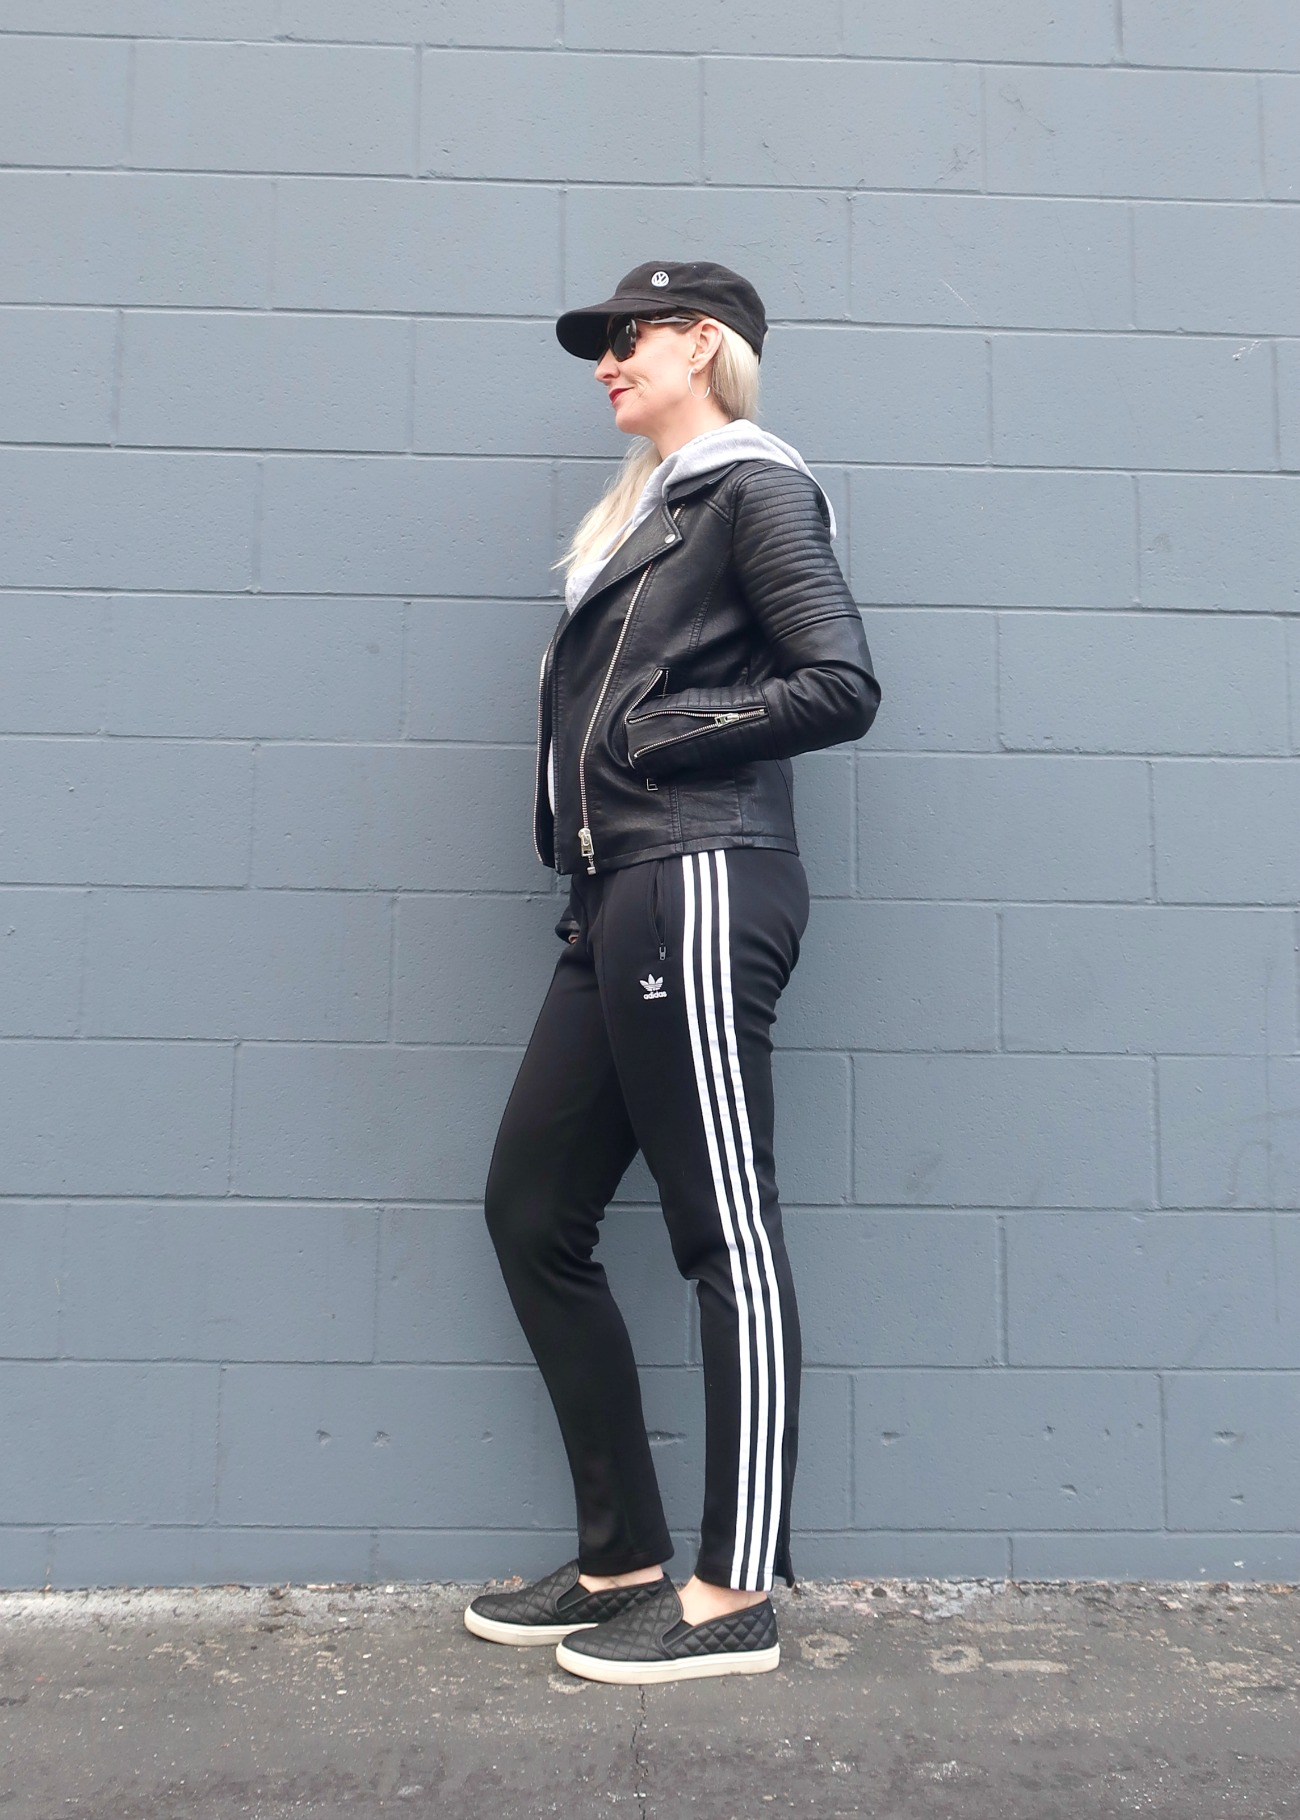 outfit idea with track pants, baseball cap, moto, hoodie